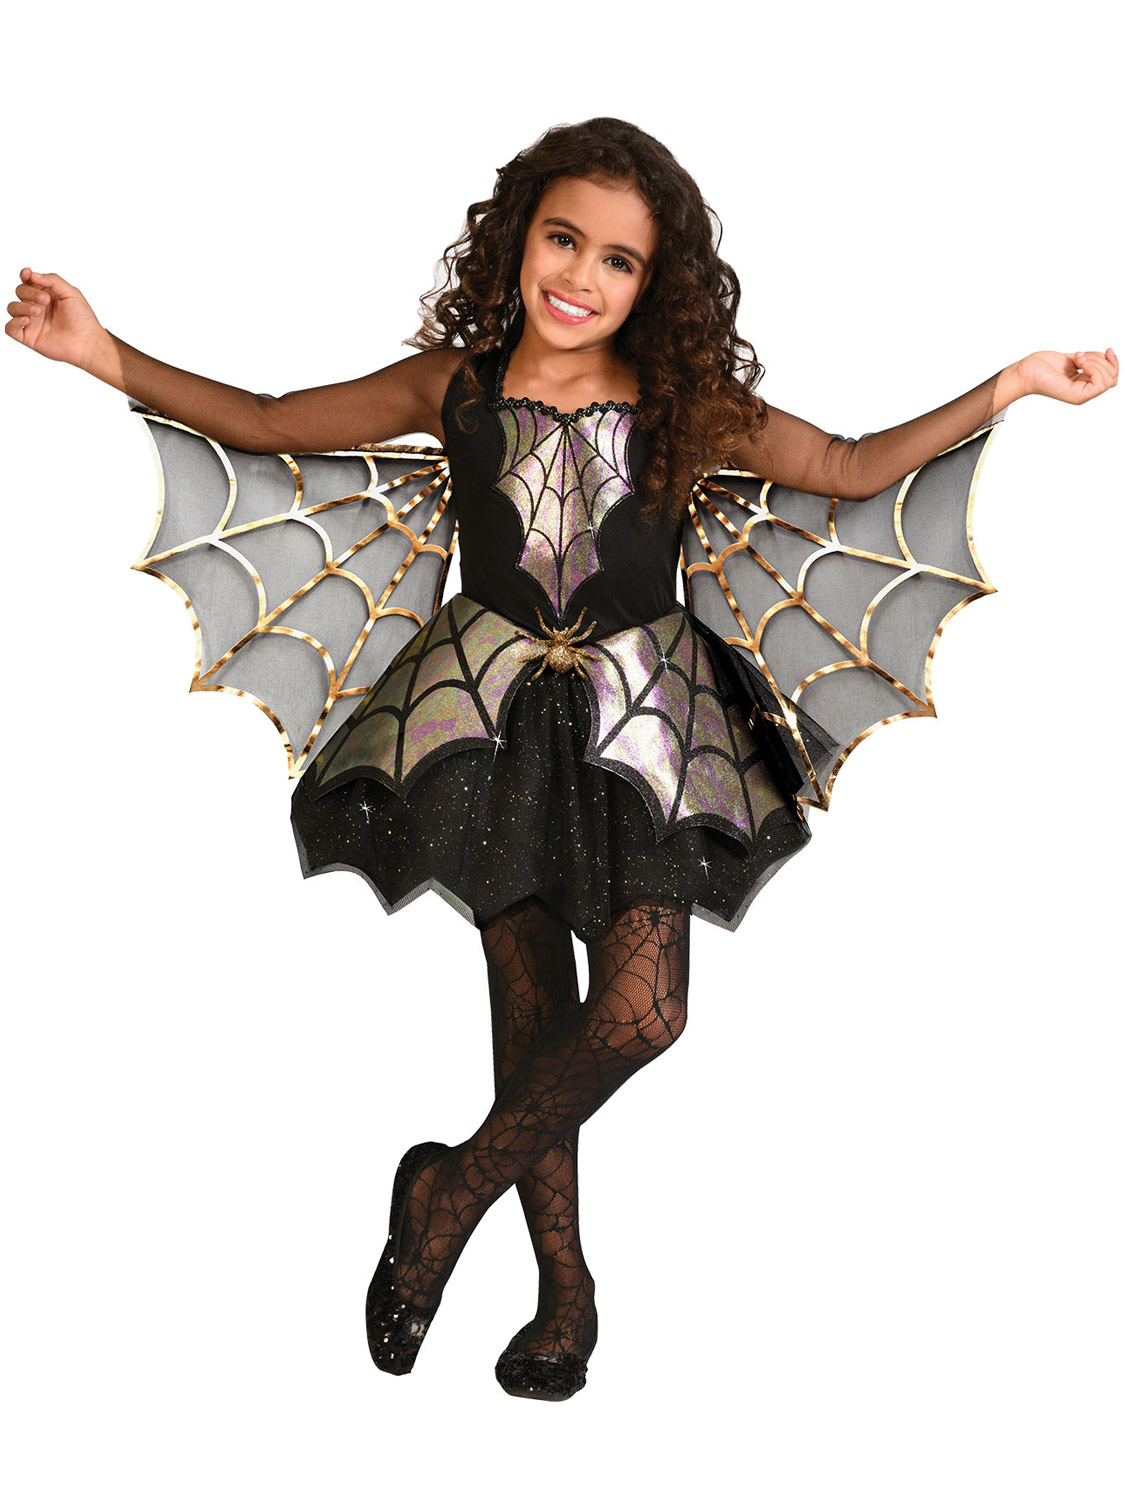 Child Spider Costume Miss Wicked Witch Web Girls Halloween Fancy Dress Outfit Ag